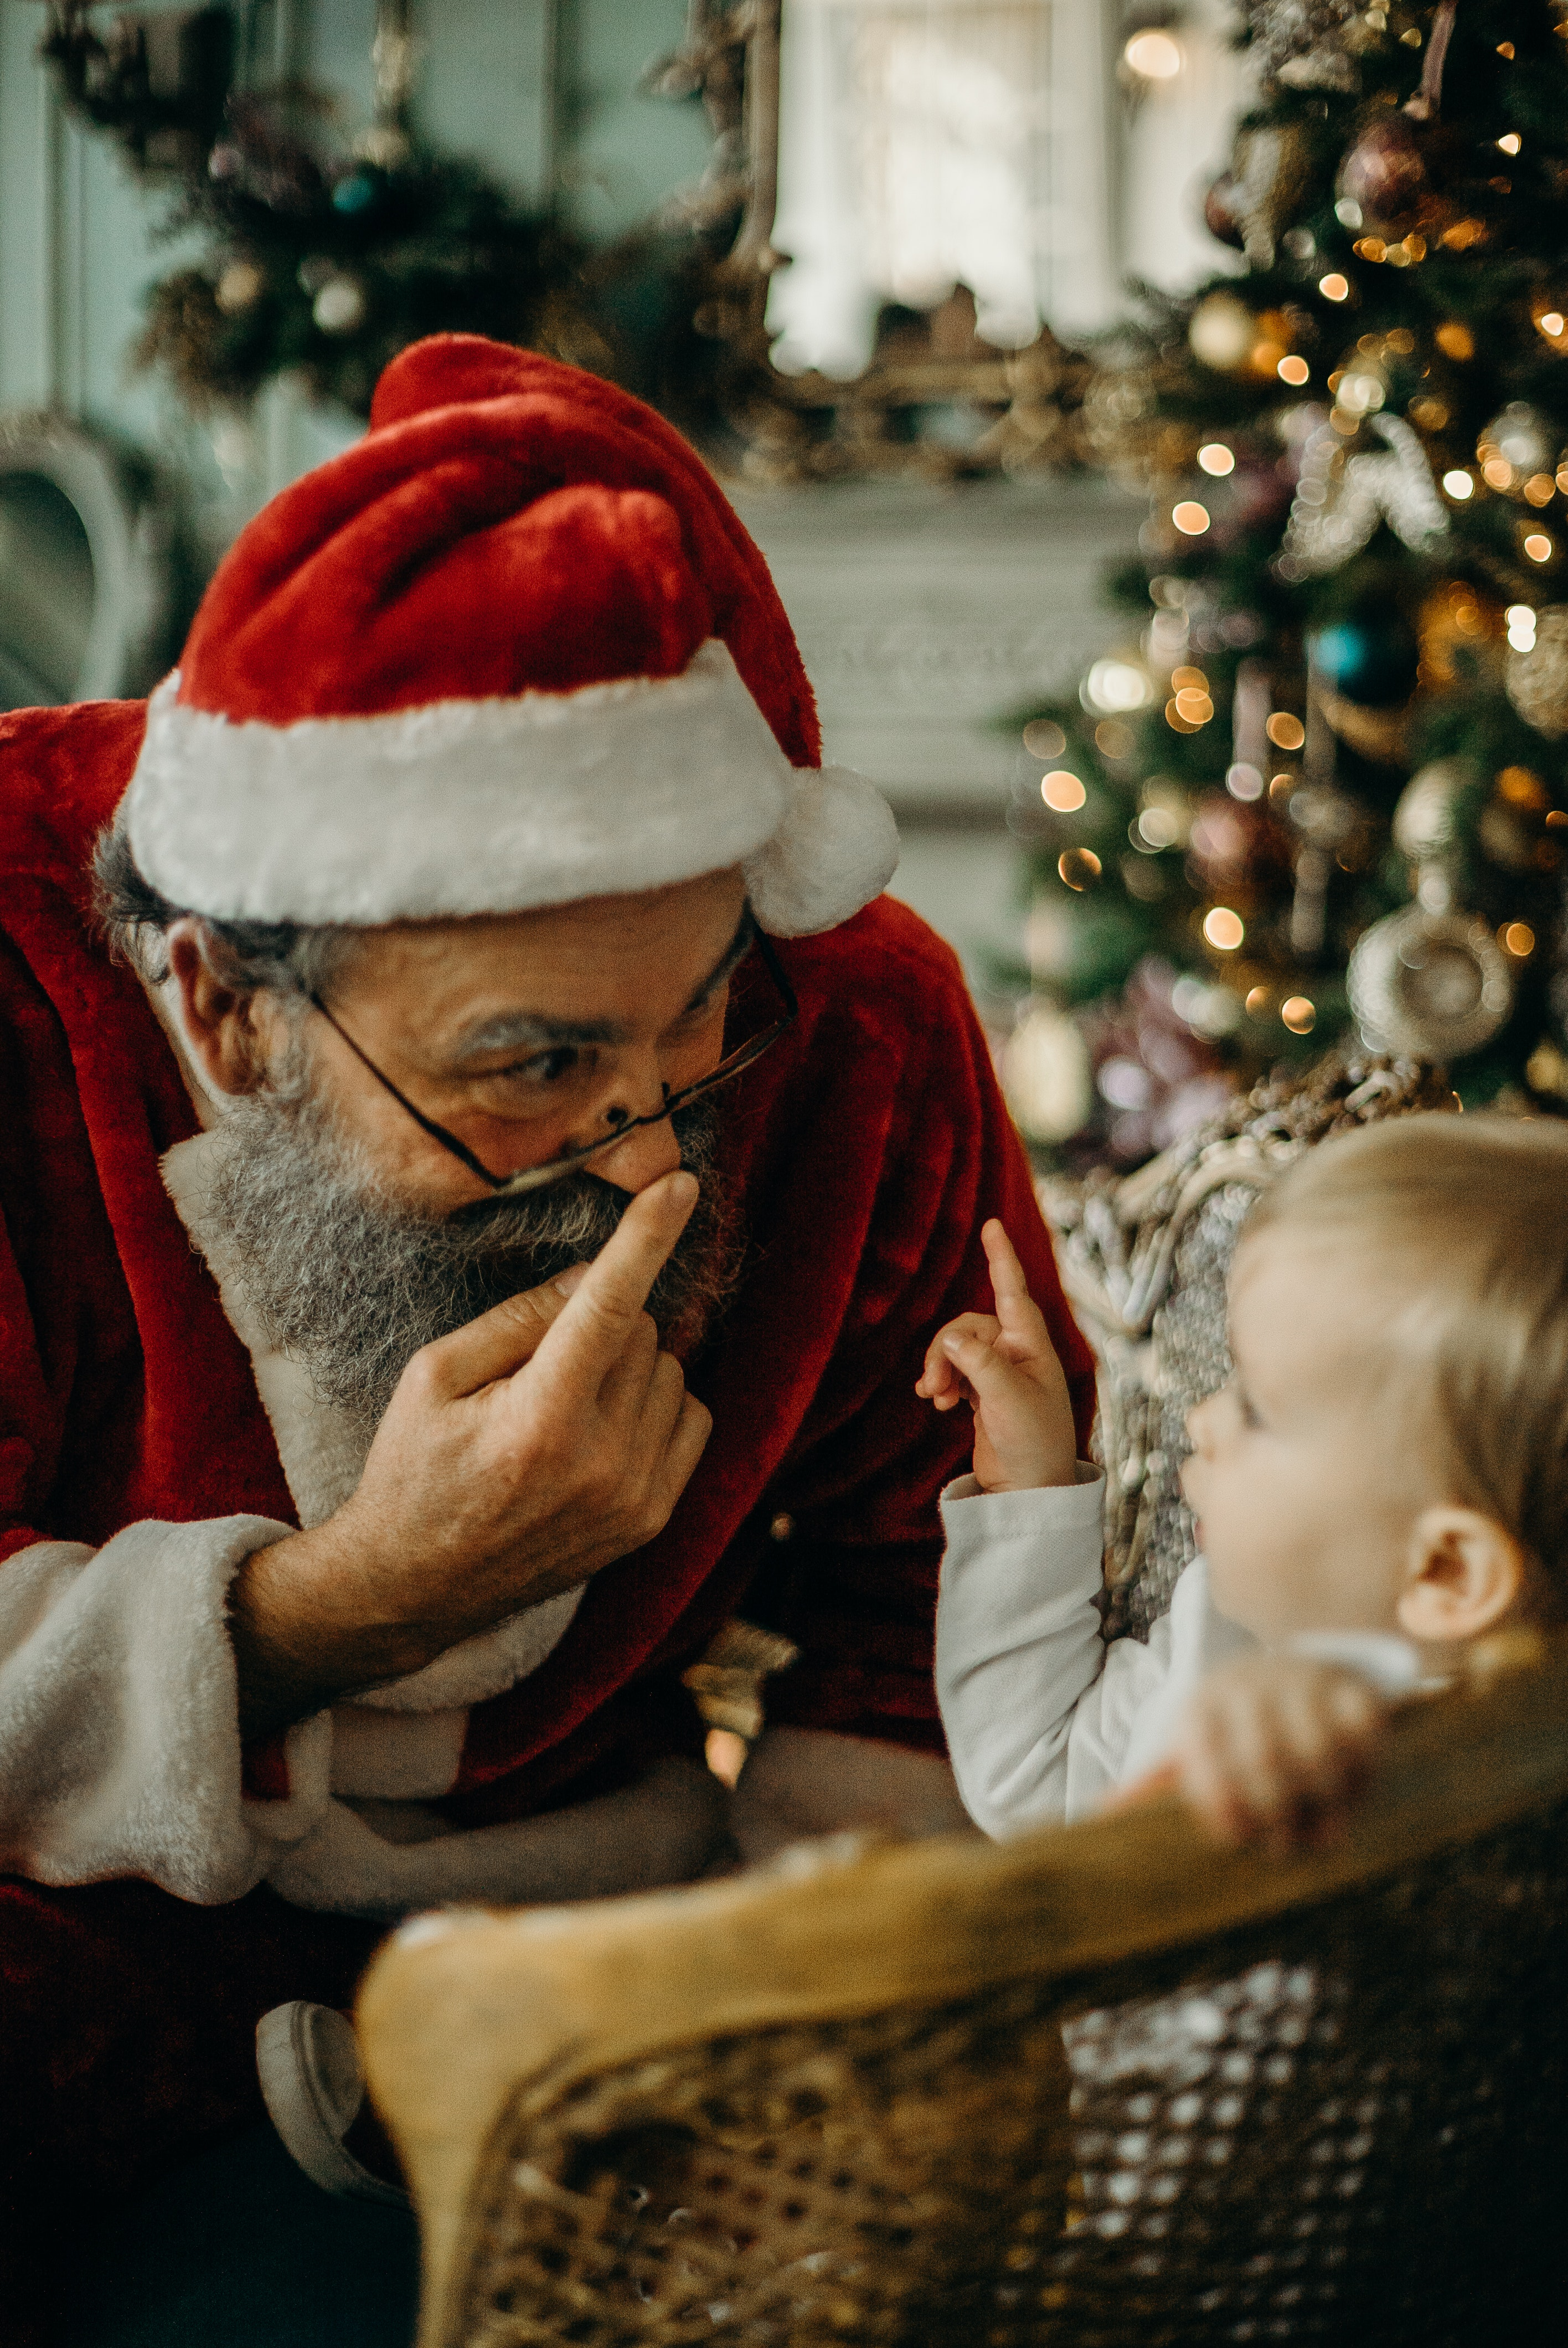 Santa claus pointing at his nose looking at a baby